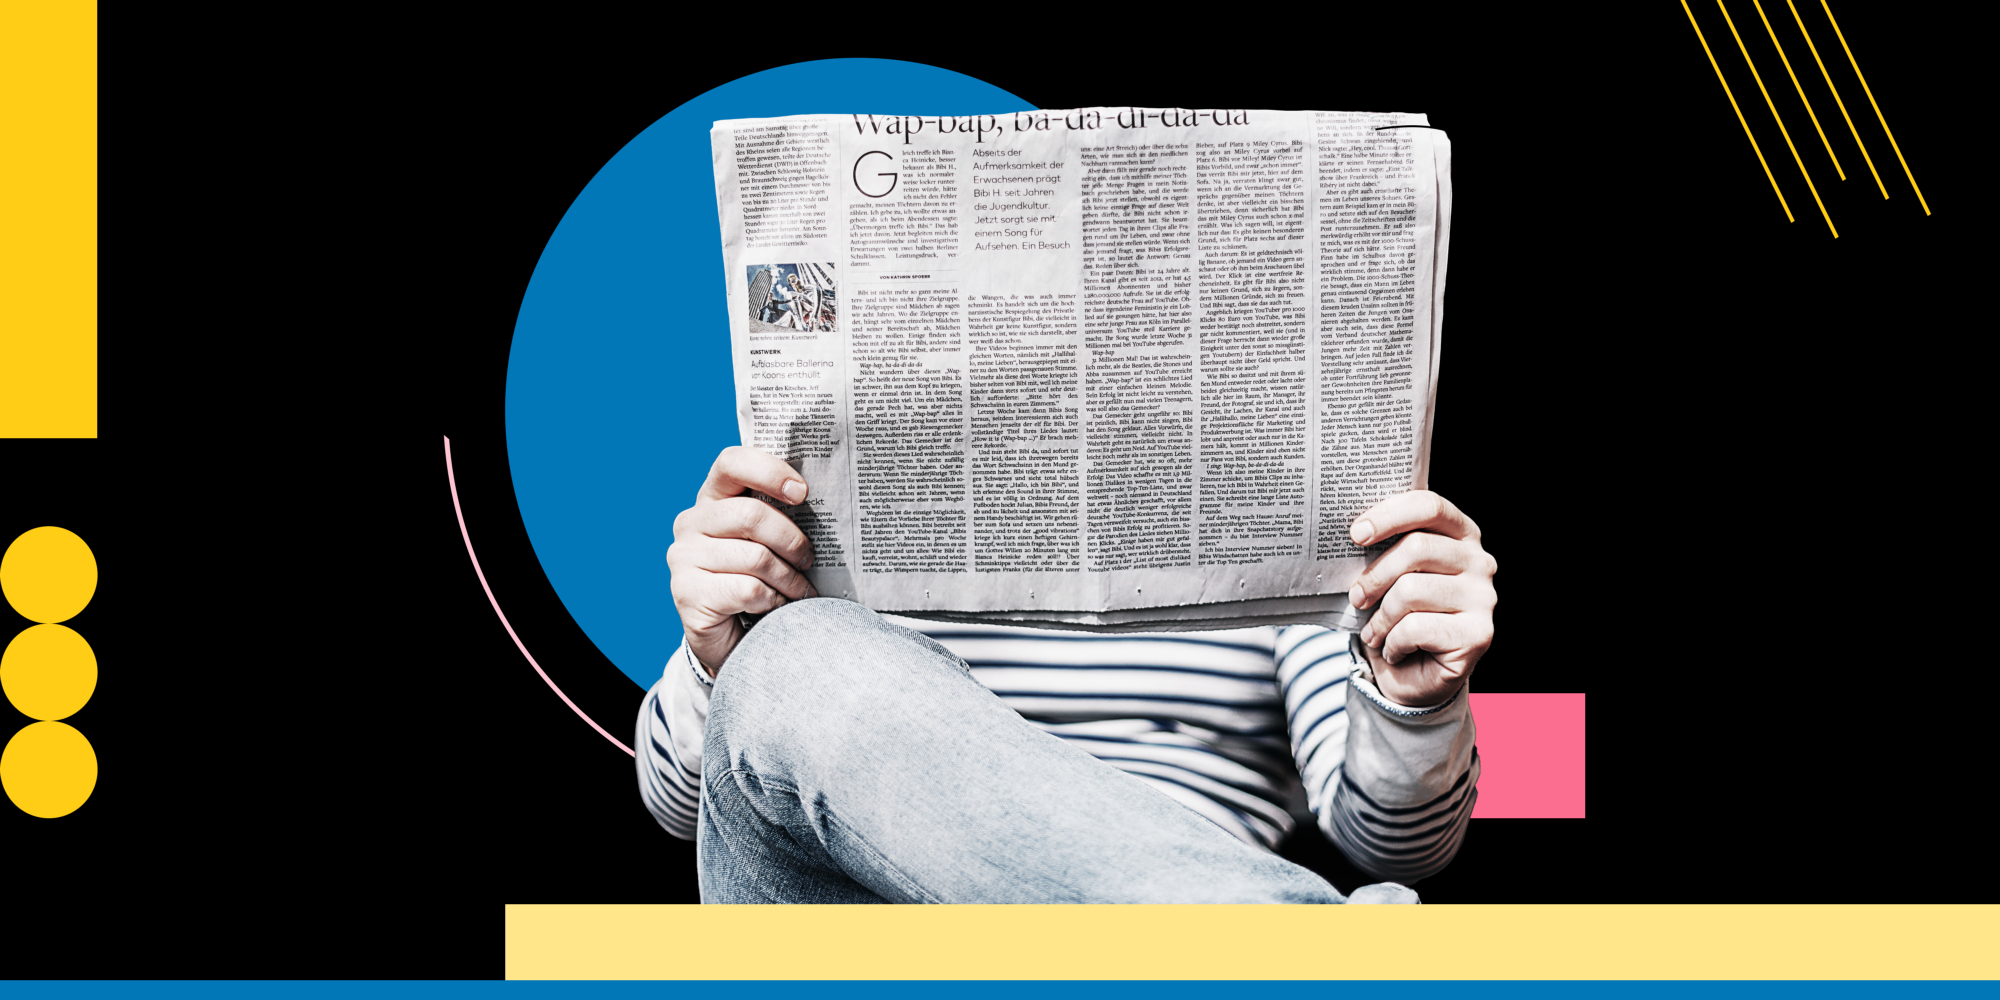 A person holds a newspaper up to read it, against a black background with bright shapes.